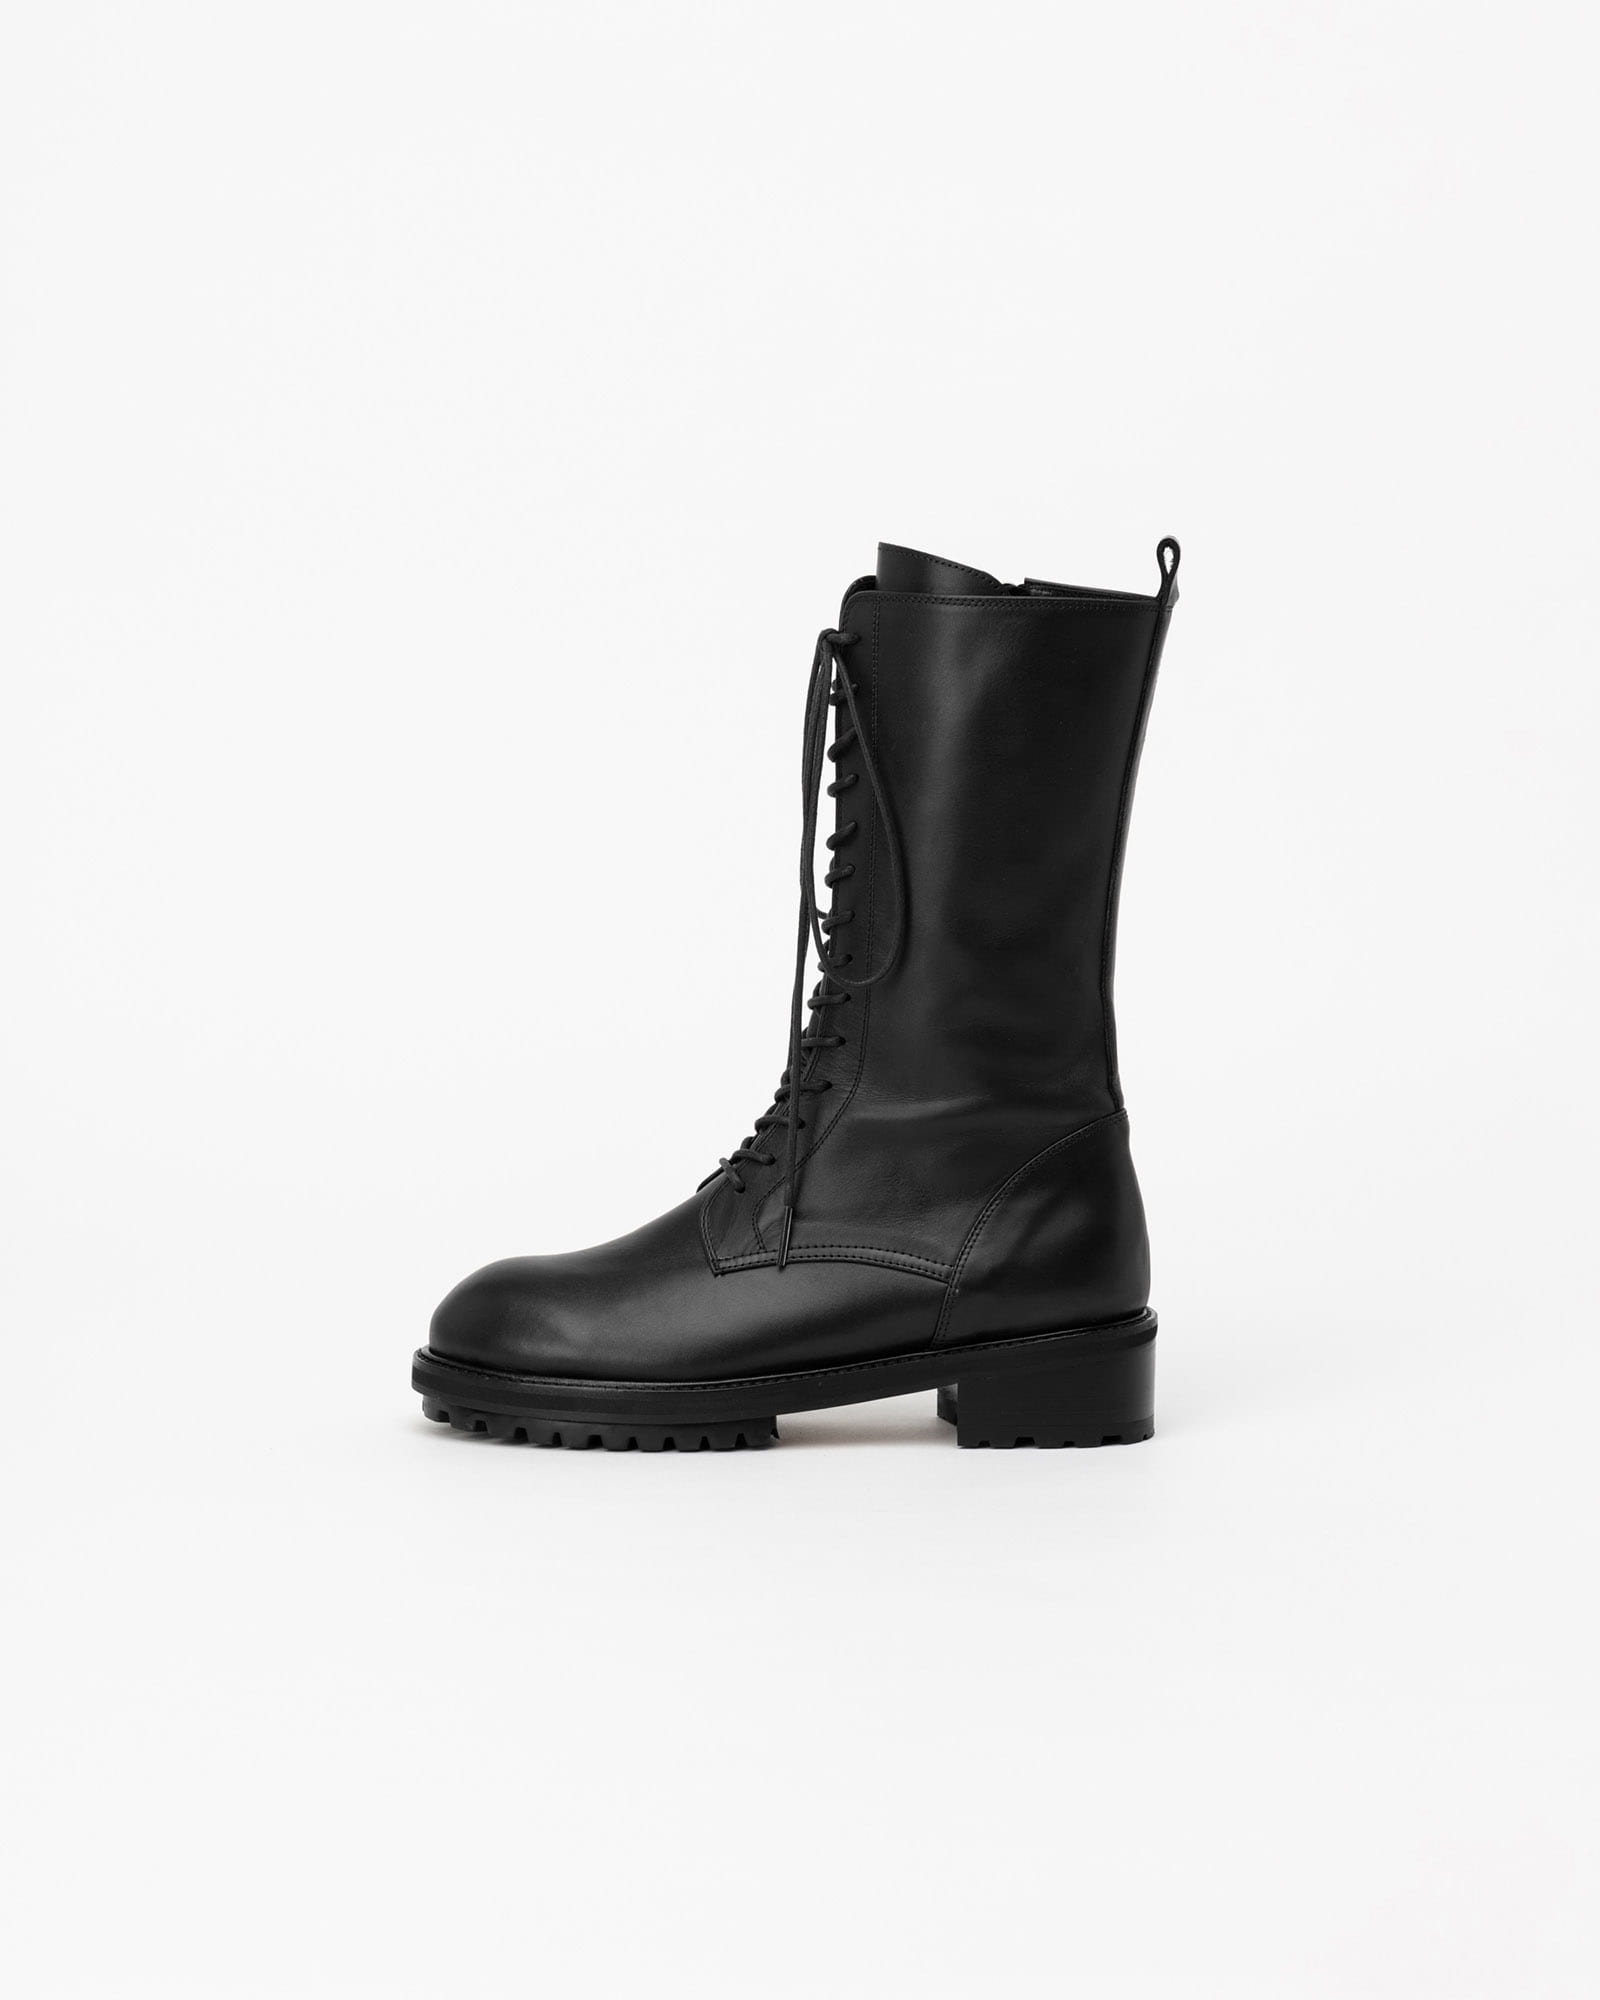 Gotham Combat Boots in Black